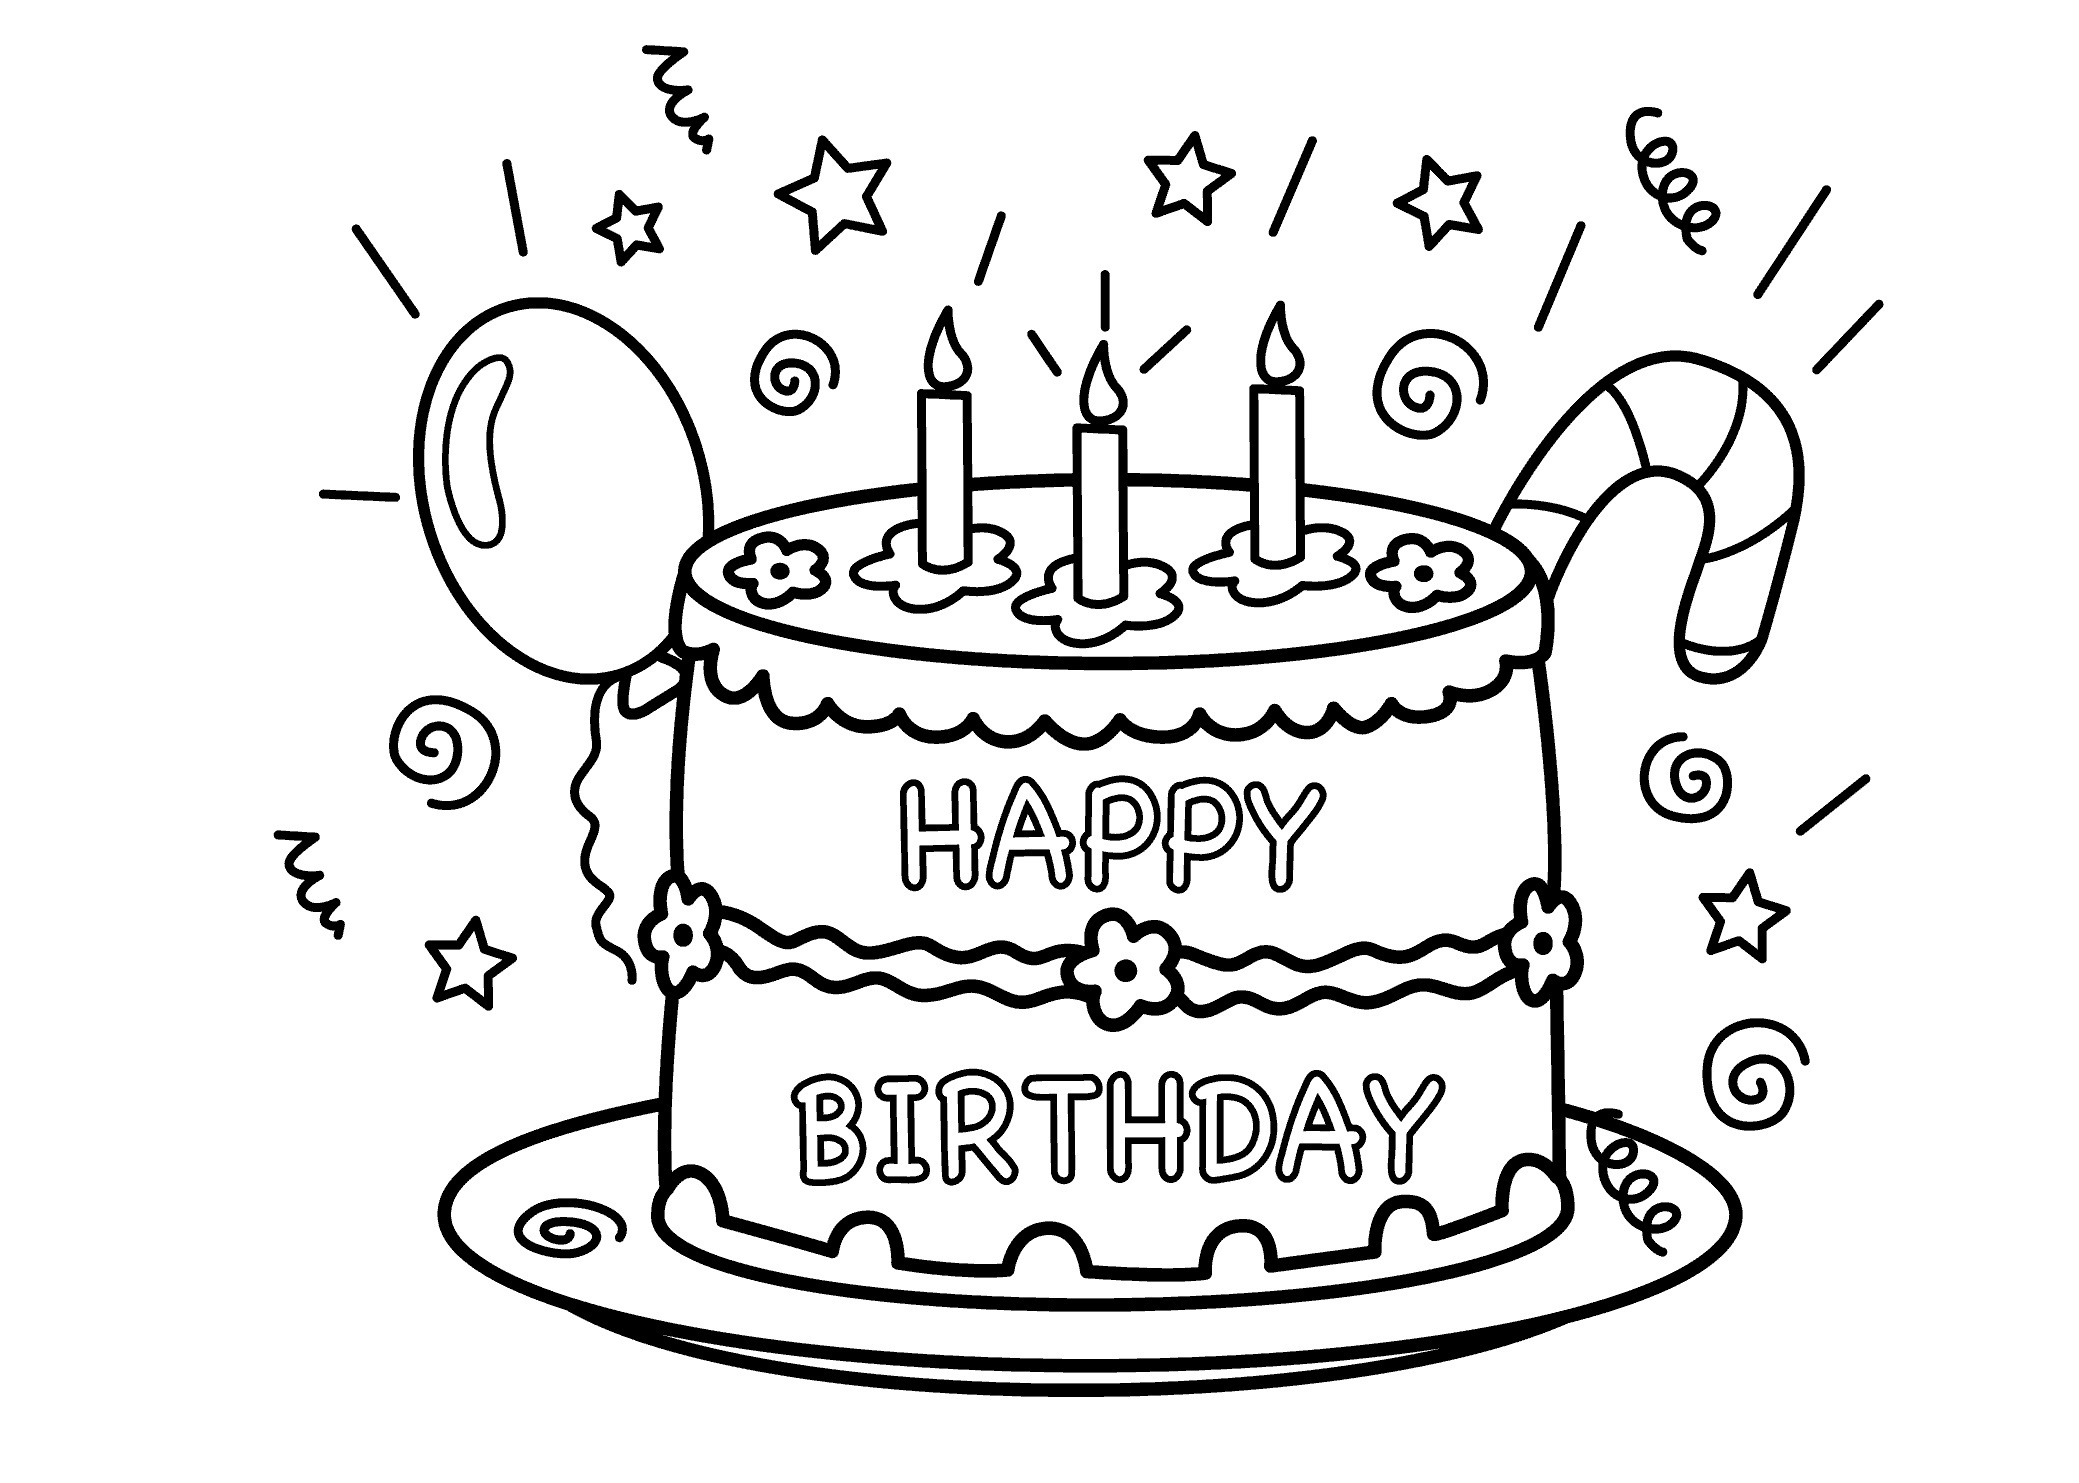 free printable birthday cake coloring pages for kids free printable birthday cake - Pages For Kids